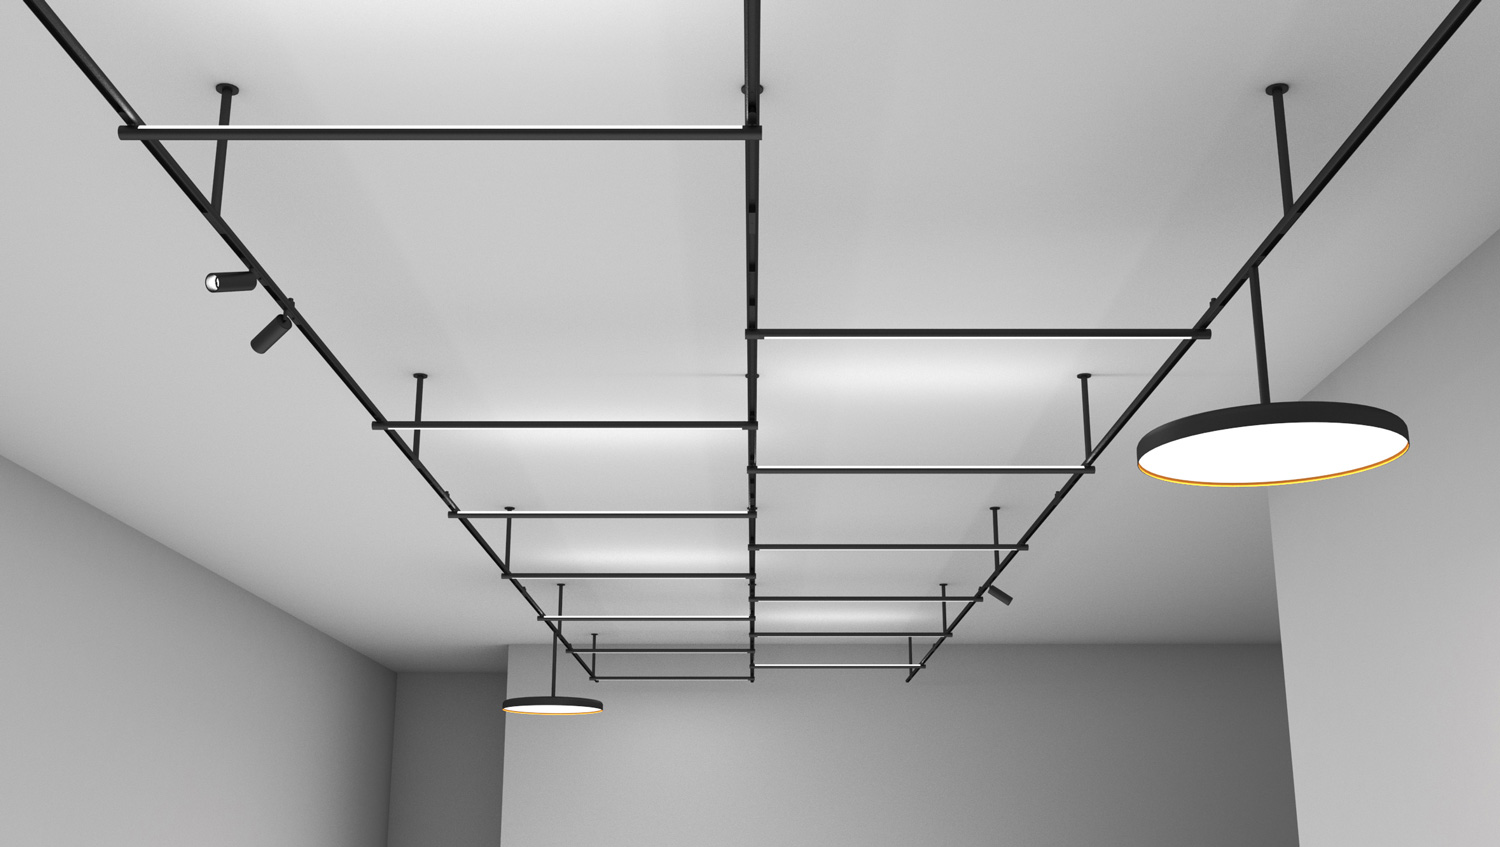 new-architectural-and-outdoor-lighting-collection-by-vincent-van-duysen-for-flos-yellowtrace-12